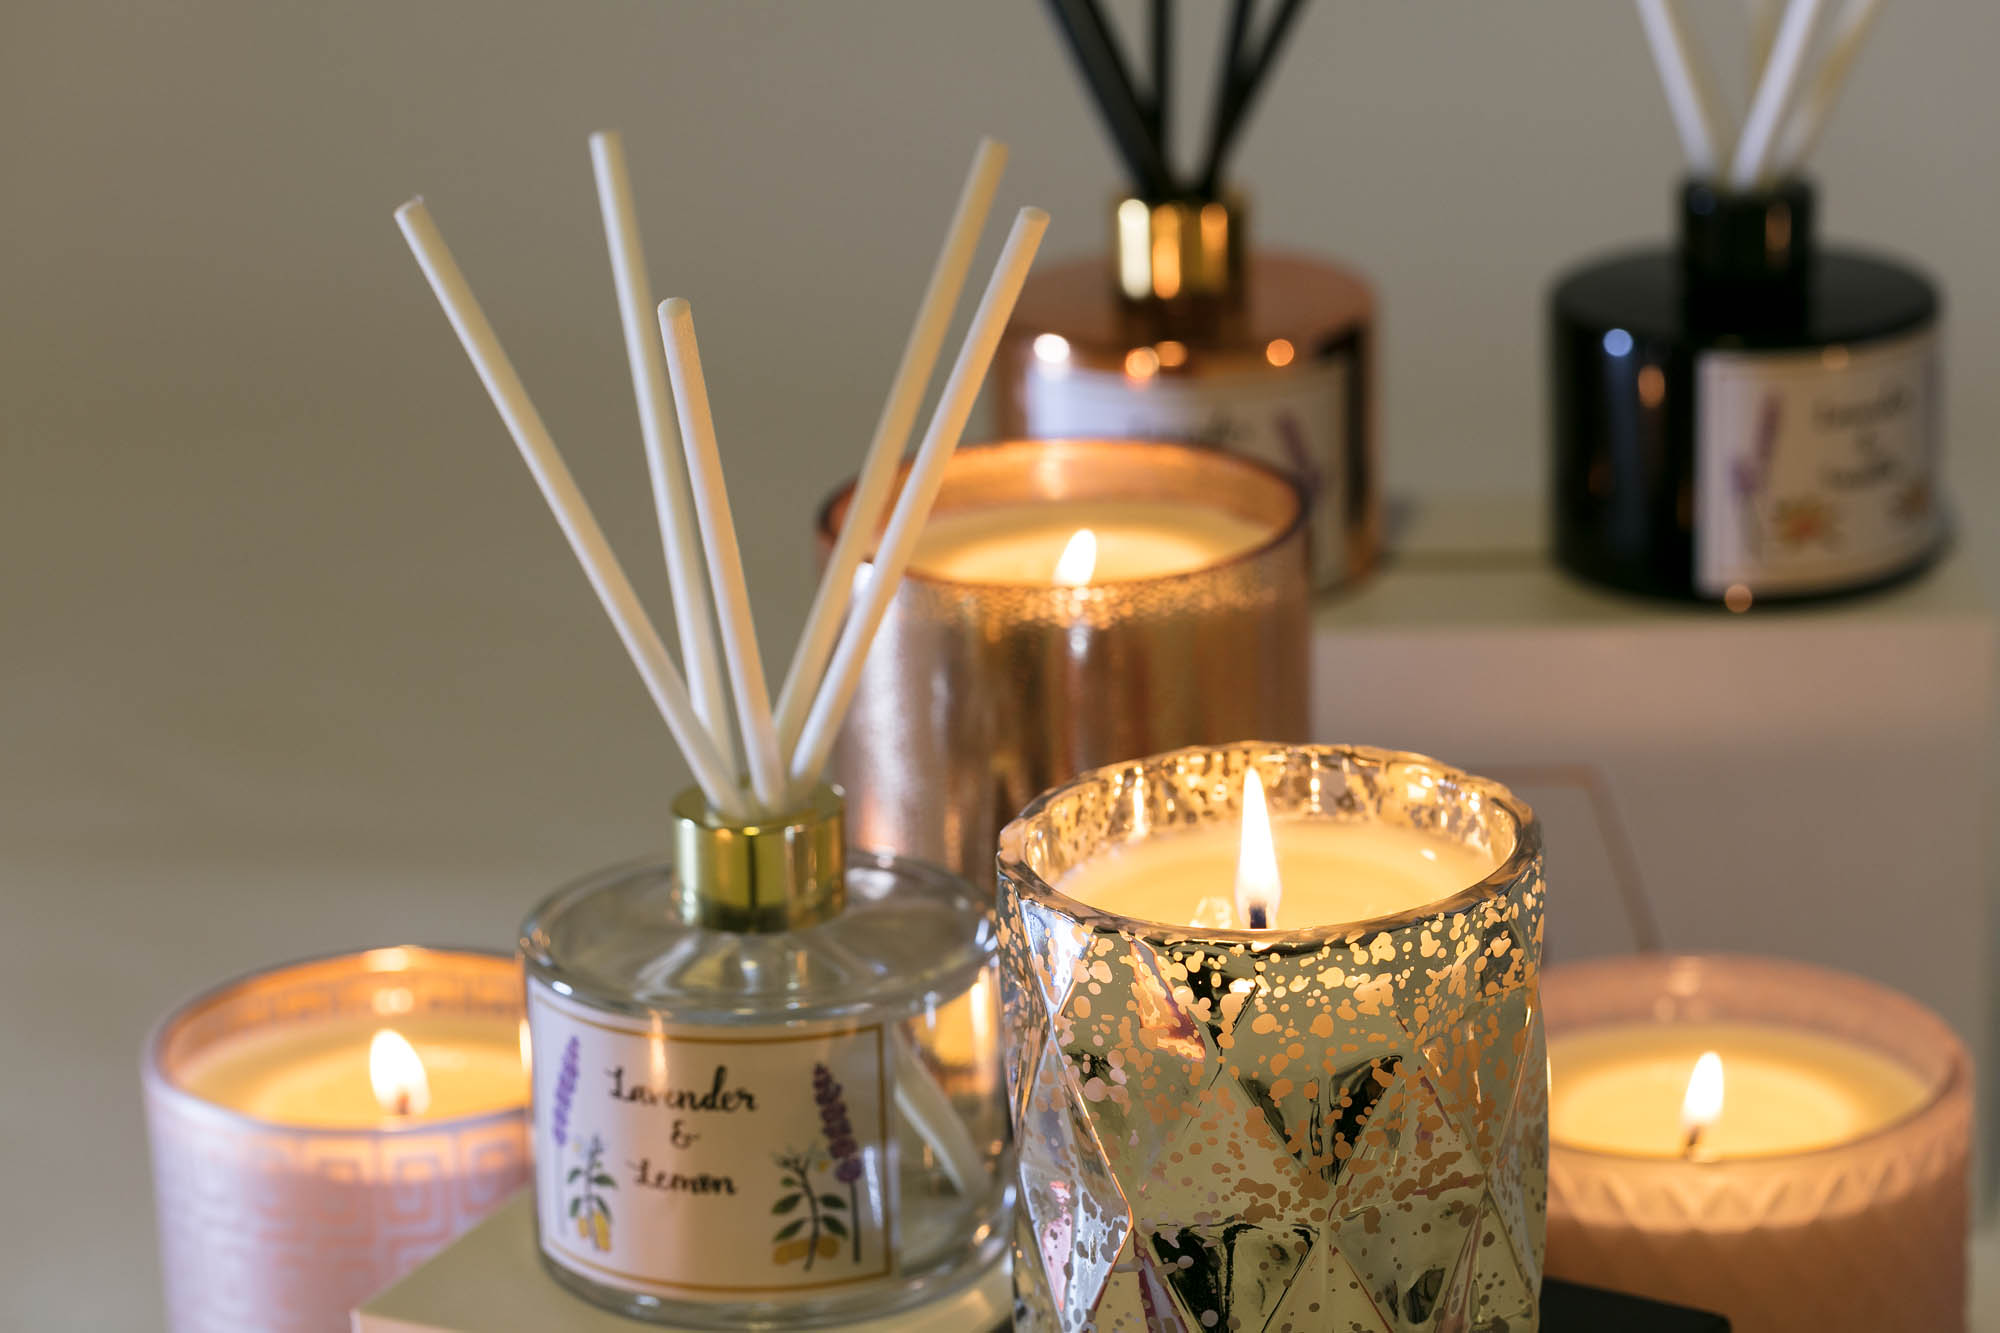 Product photography of diffusers and candles group lit afternoon look